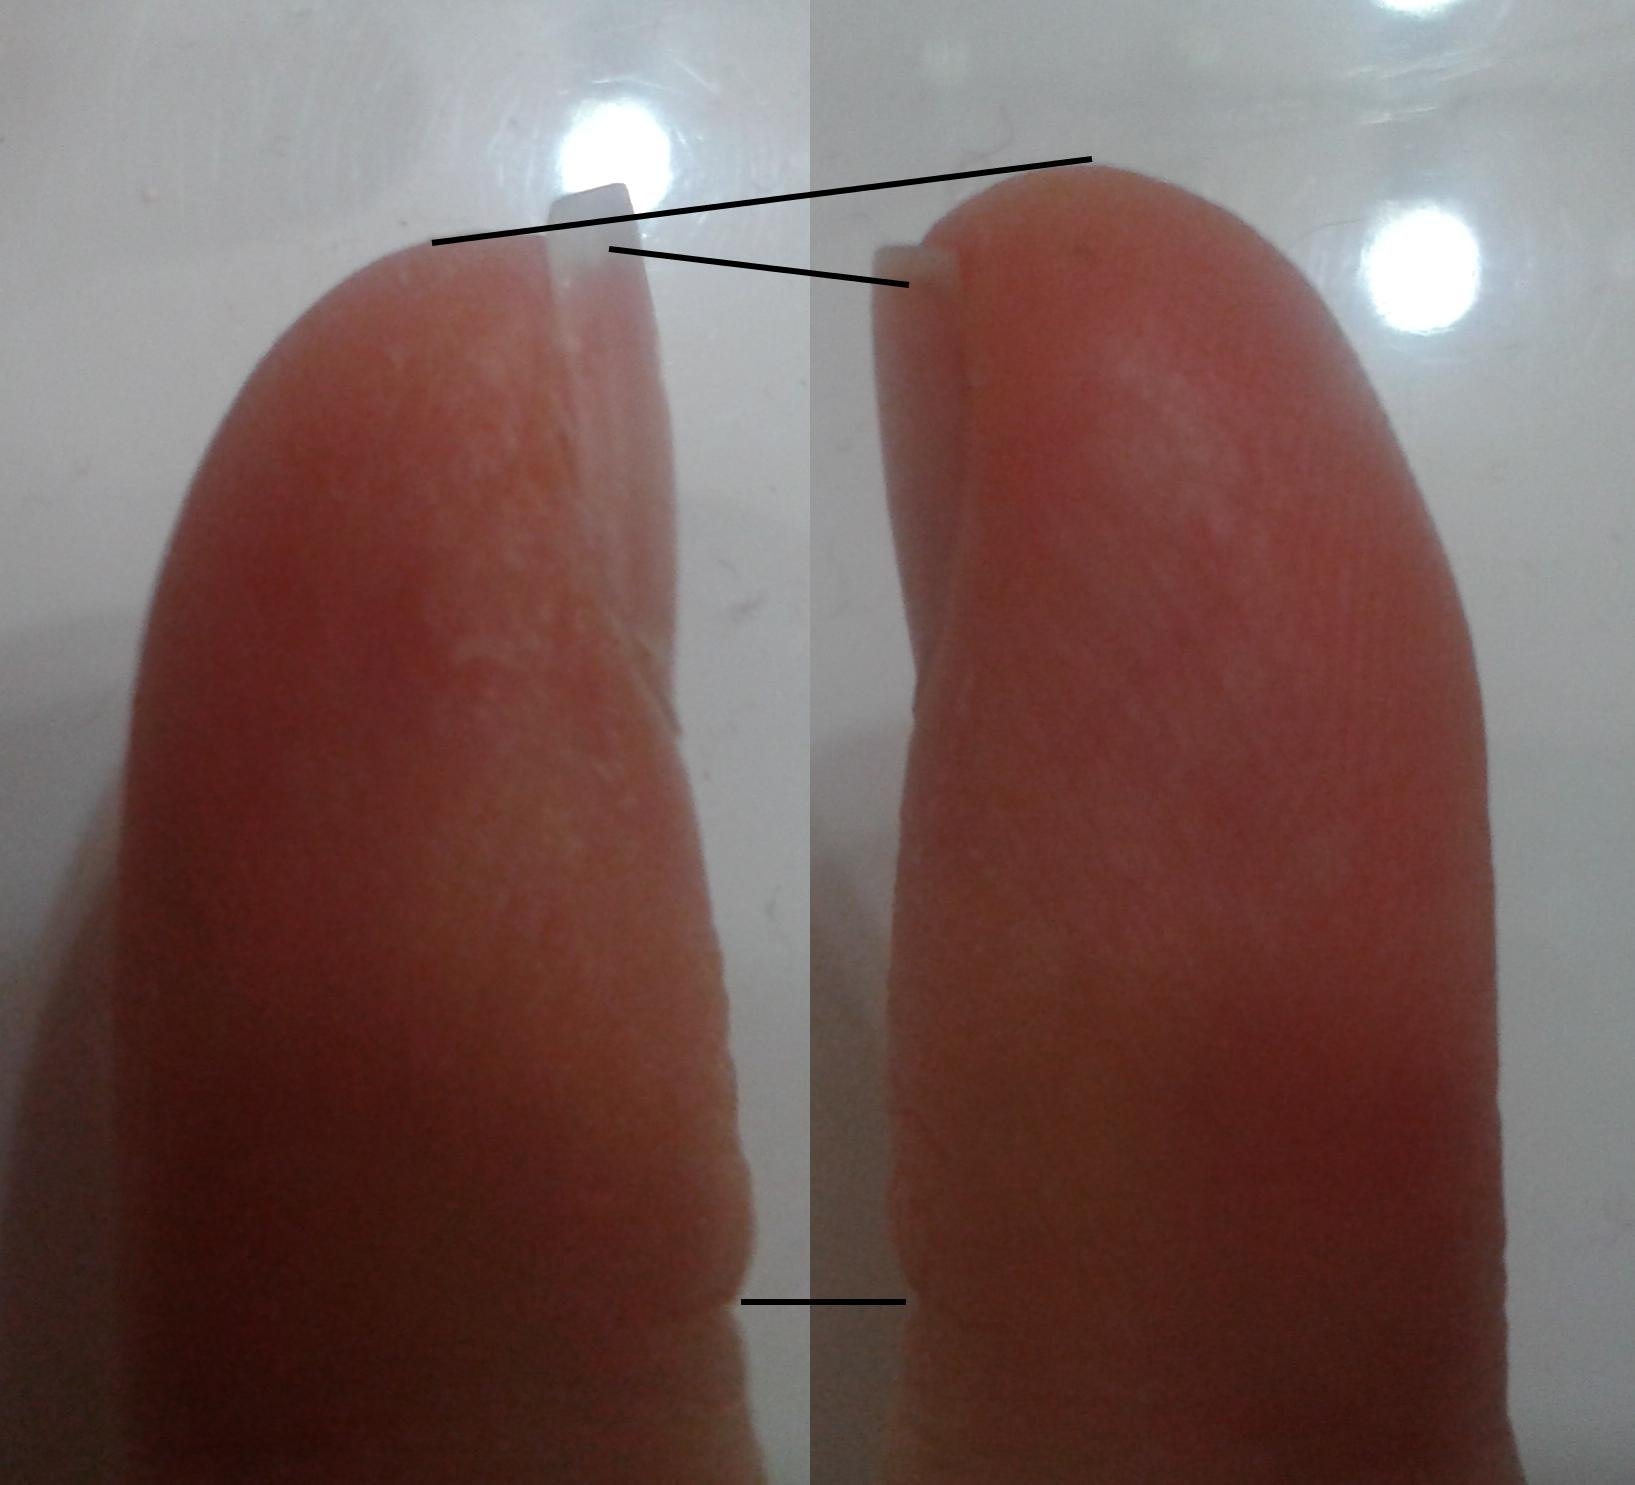 The right and left pinkies of a guitarist